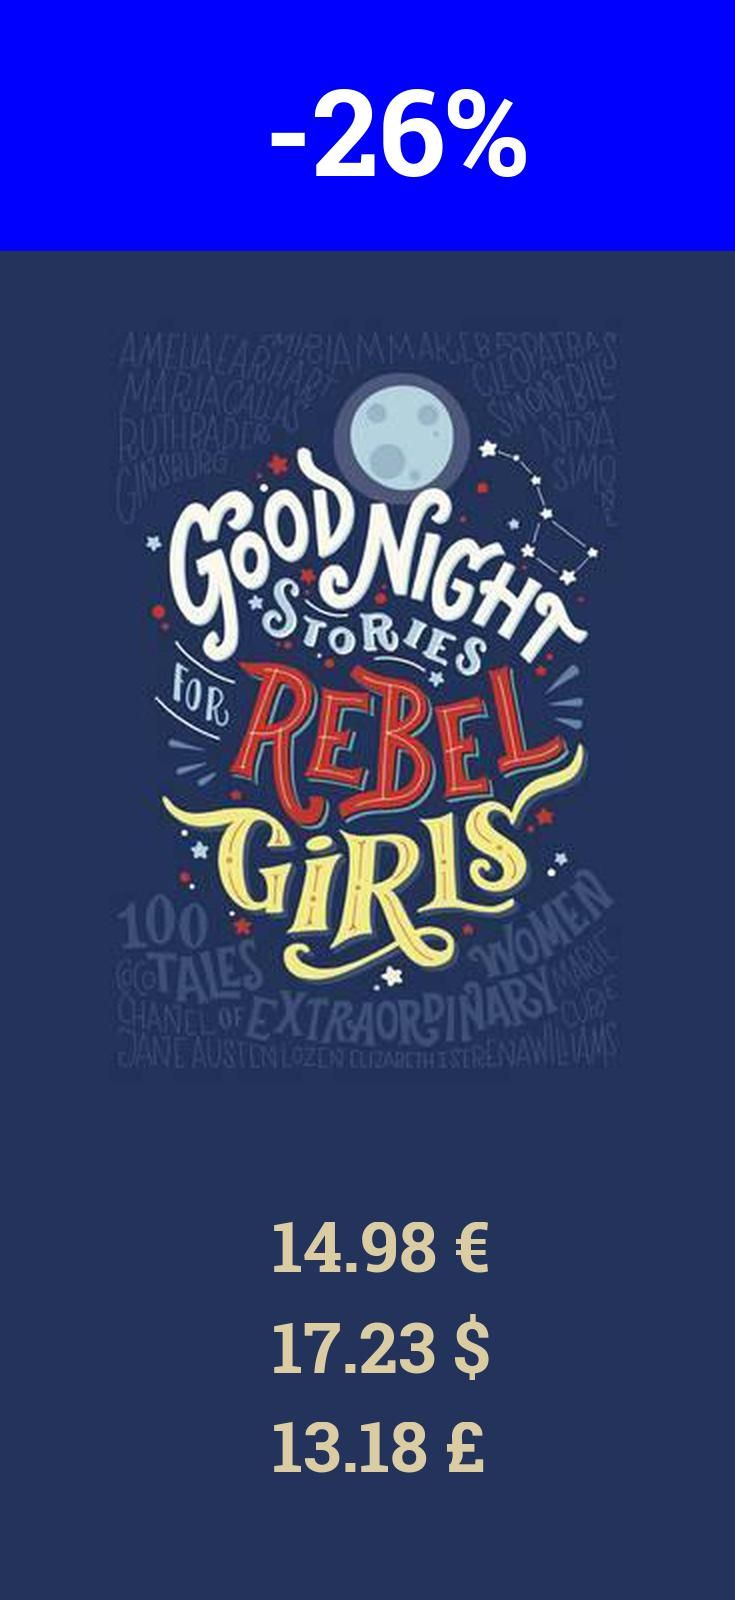 You should also read the book Good Night Stories for Rebel Girls. Now it is 26% off on bookdepository. This amazing book shows young girls they can be anything they want -- Melinda Gates Trust me, your life needs Good Night Stories for Rebel Girls... Absolutely beautiful - get one for yourself and one to inspire a woman in your life -- Sarah Shaffi Stylist Featuring spies, pirates, astronauts, activists, scientists, writers, sports stars and more, many of the stories are so thrilling and…